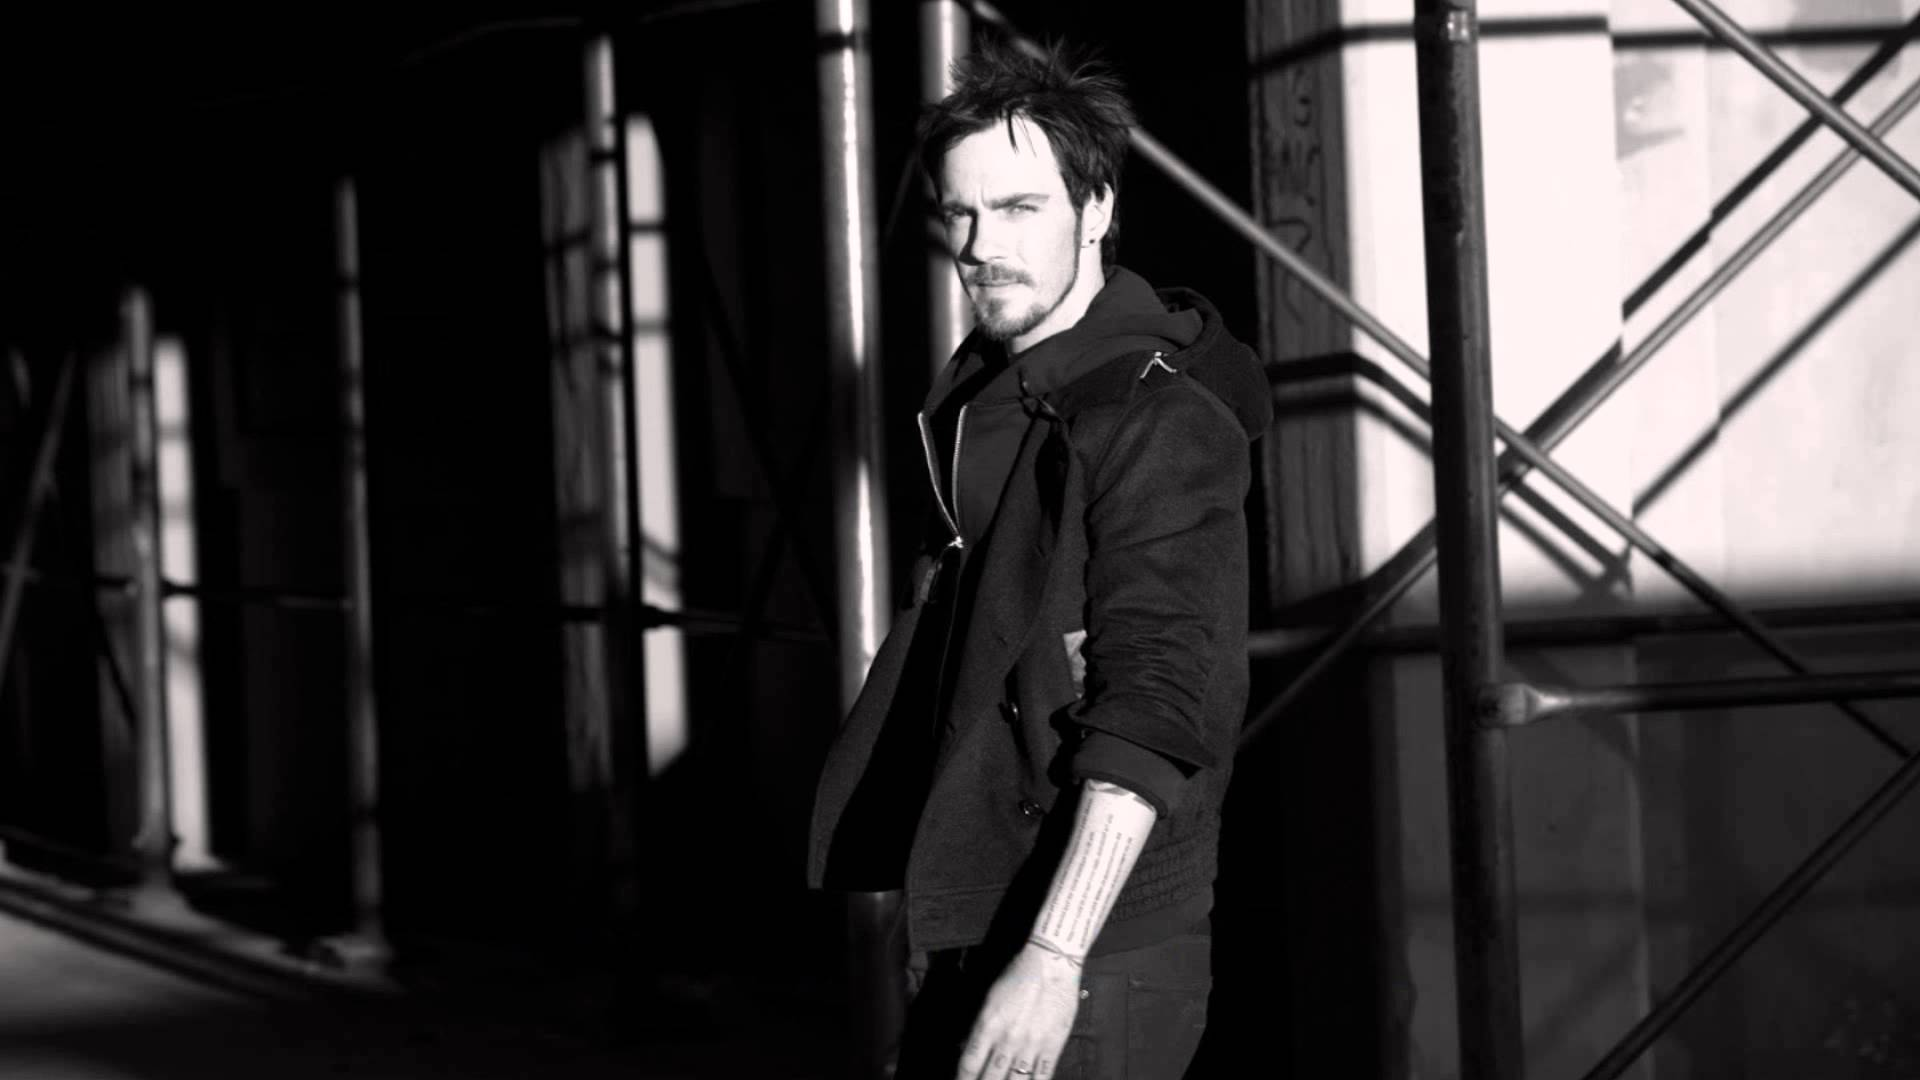 Adam gontier wallpapers high quality download free - Adam gontier wallpaper ...